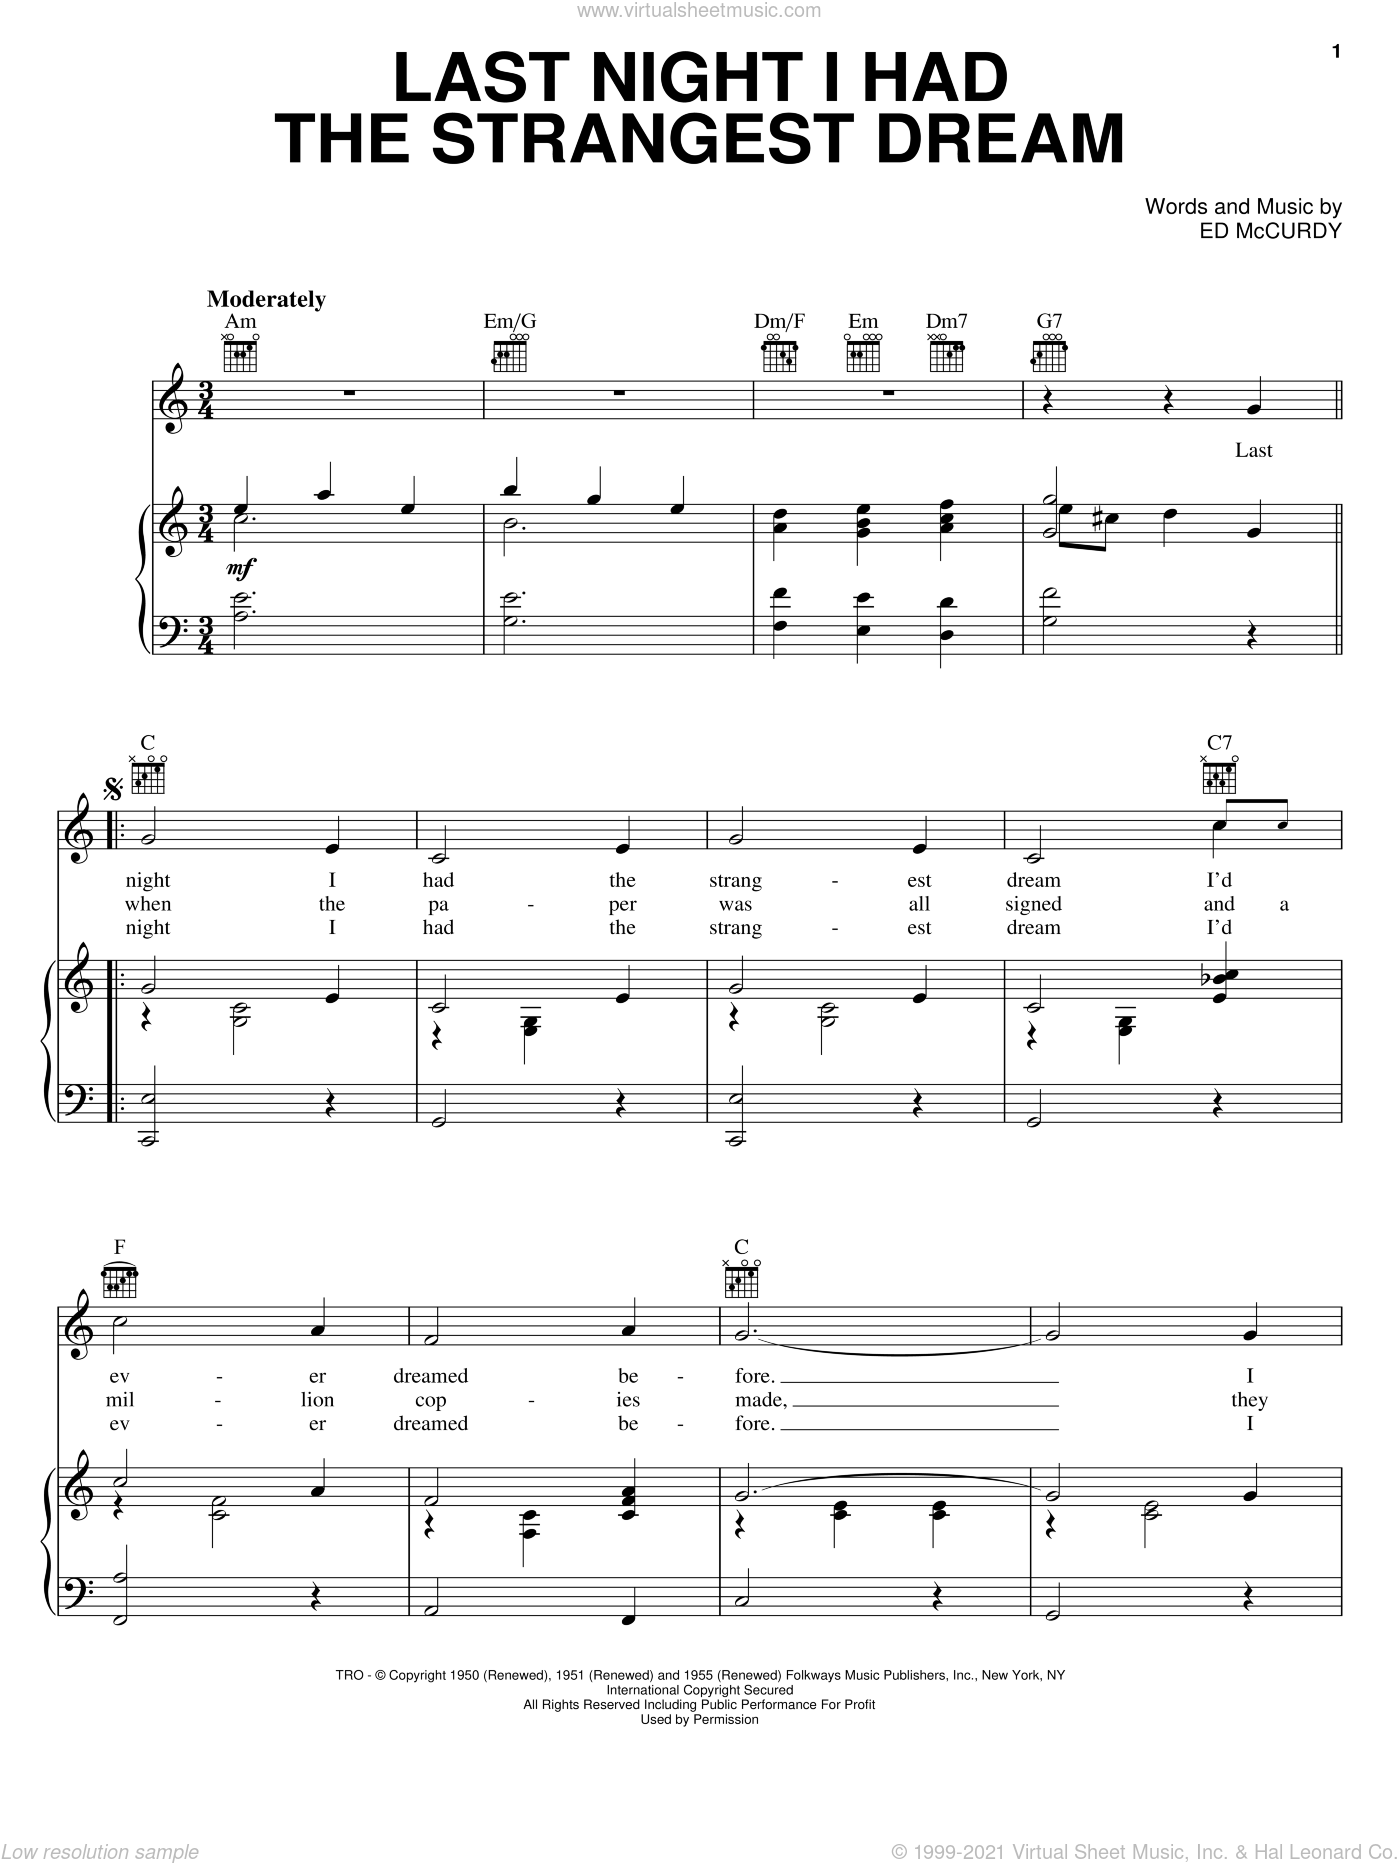 Last Night I Had The Strangest Dream sheet music for voice, piano or guitar by Ed McCurdy and Simon & Garfunkel. Score Image Preview.